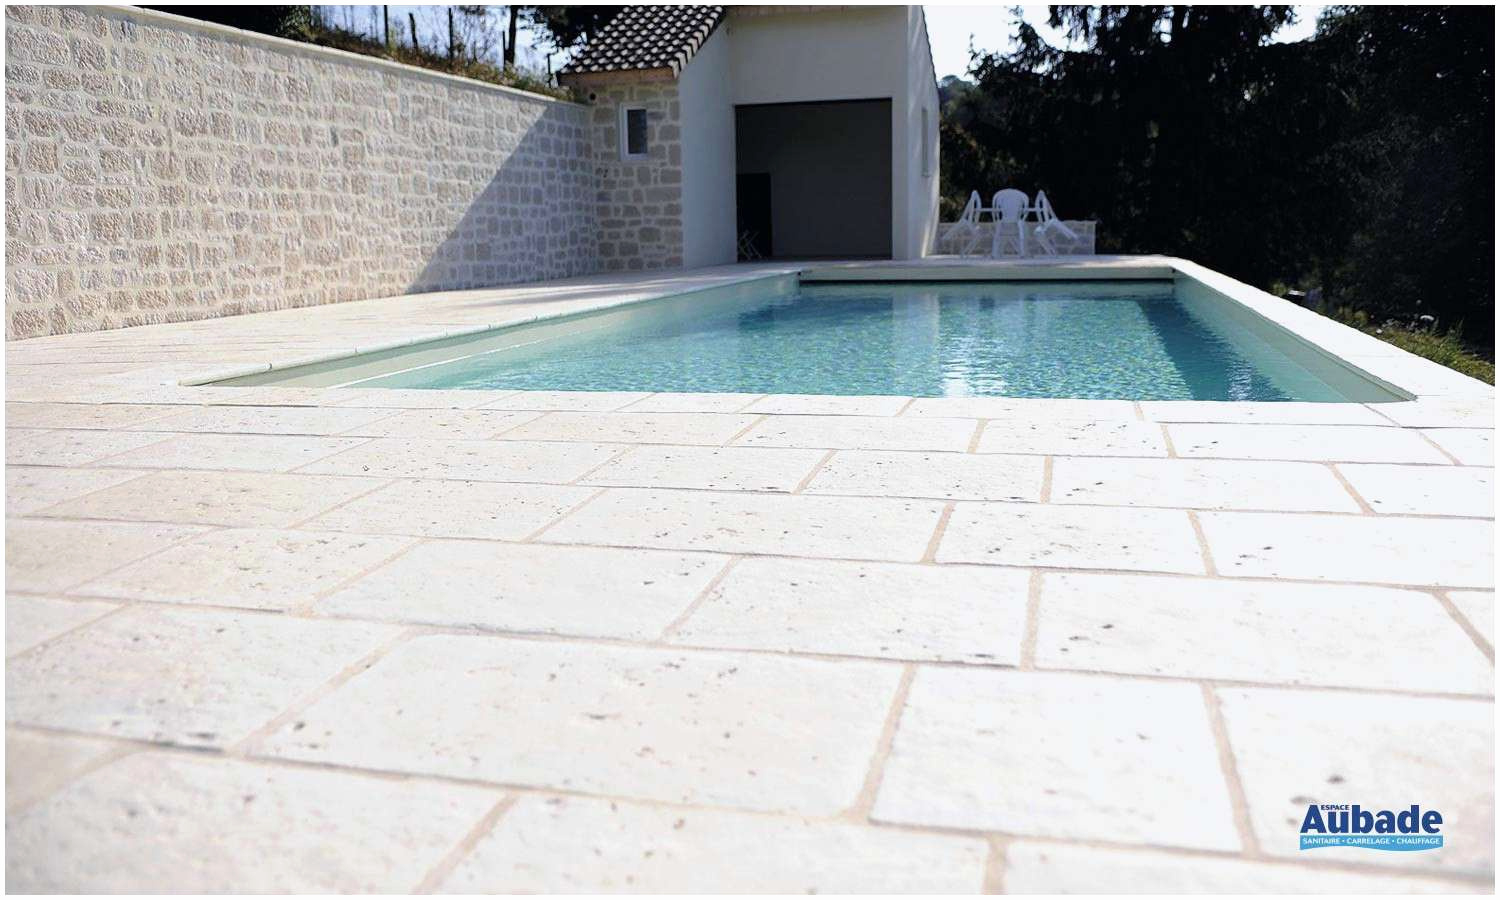 Carrelage Piscine Castorama - Idees Conception Jardin | Idees Conception Jardin